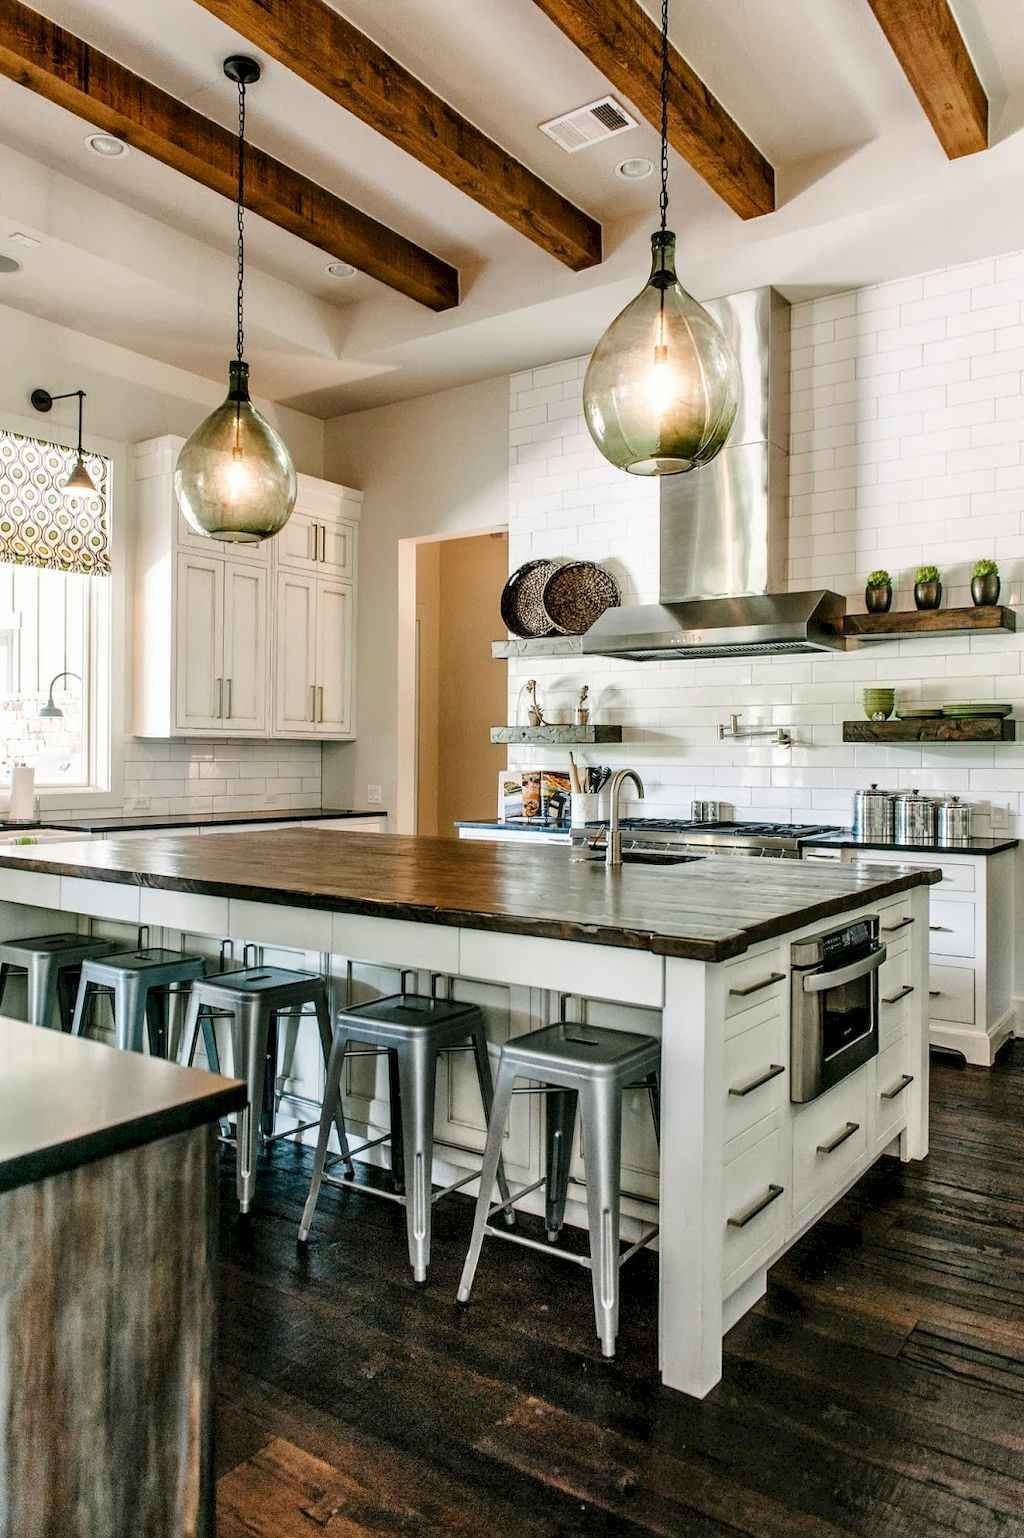 120 Modern Rustic Farmhouse Kitchen Decor Ideas Kitchen 120